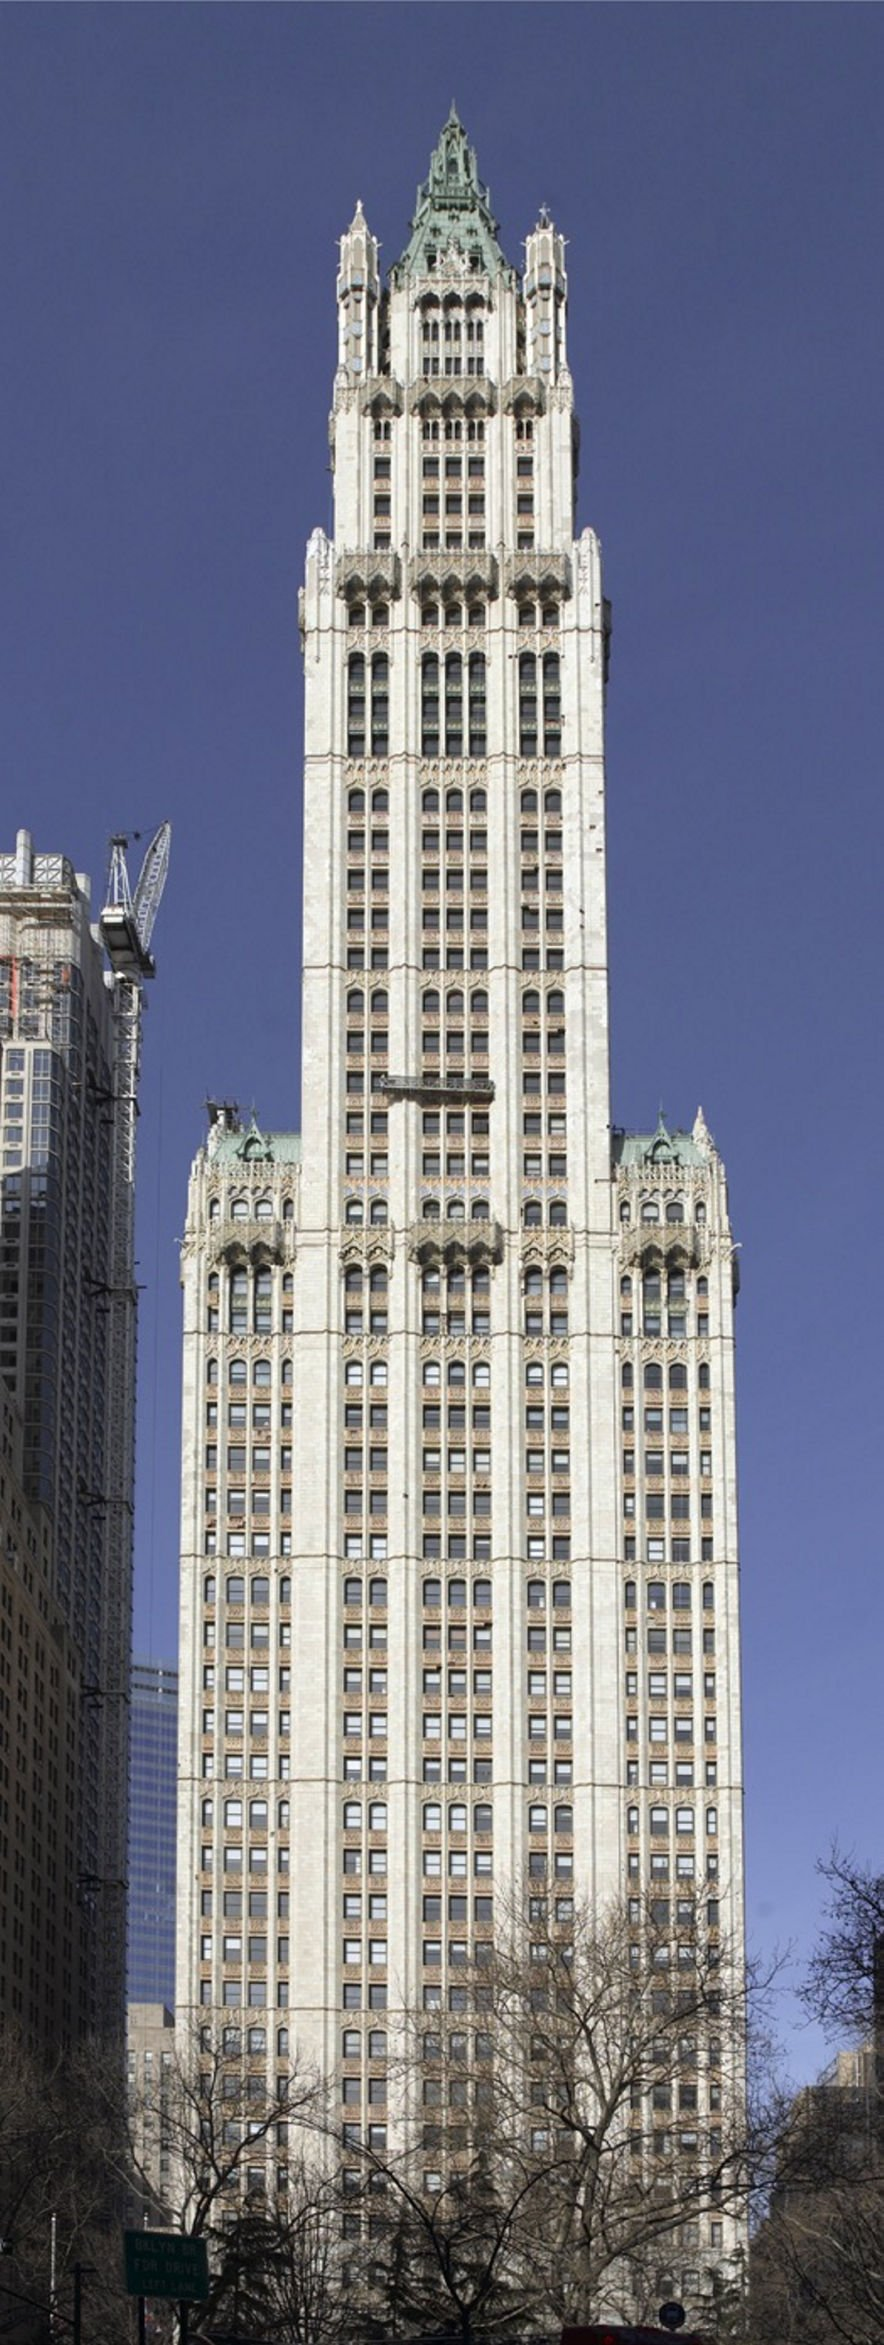 The sky's the limit Five-and-dime magnate planned Woolworth